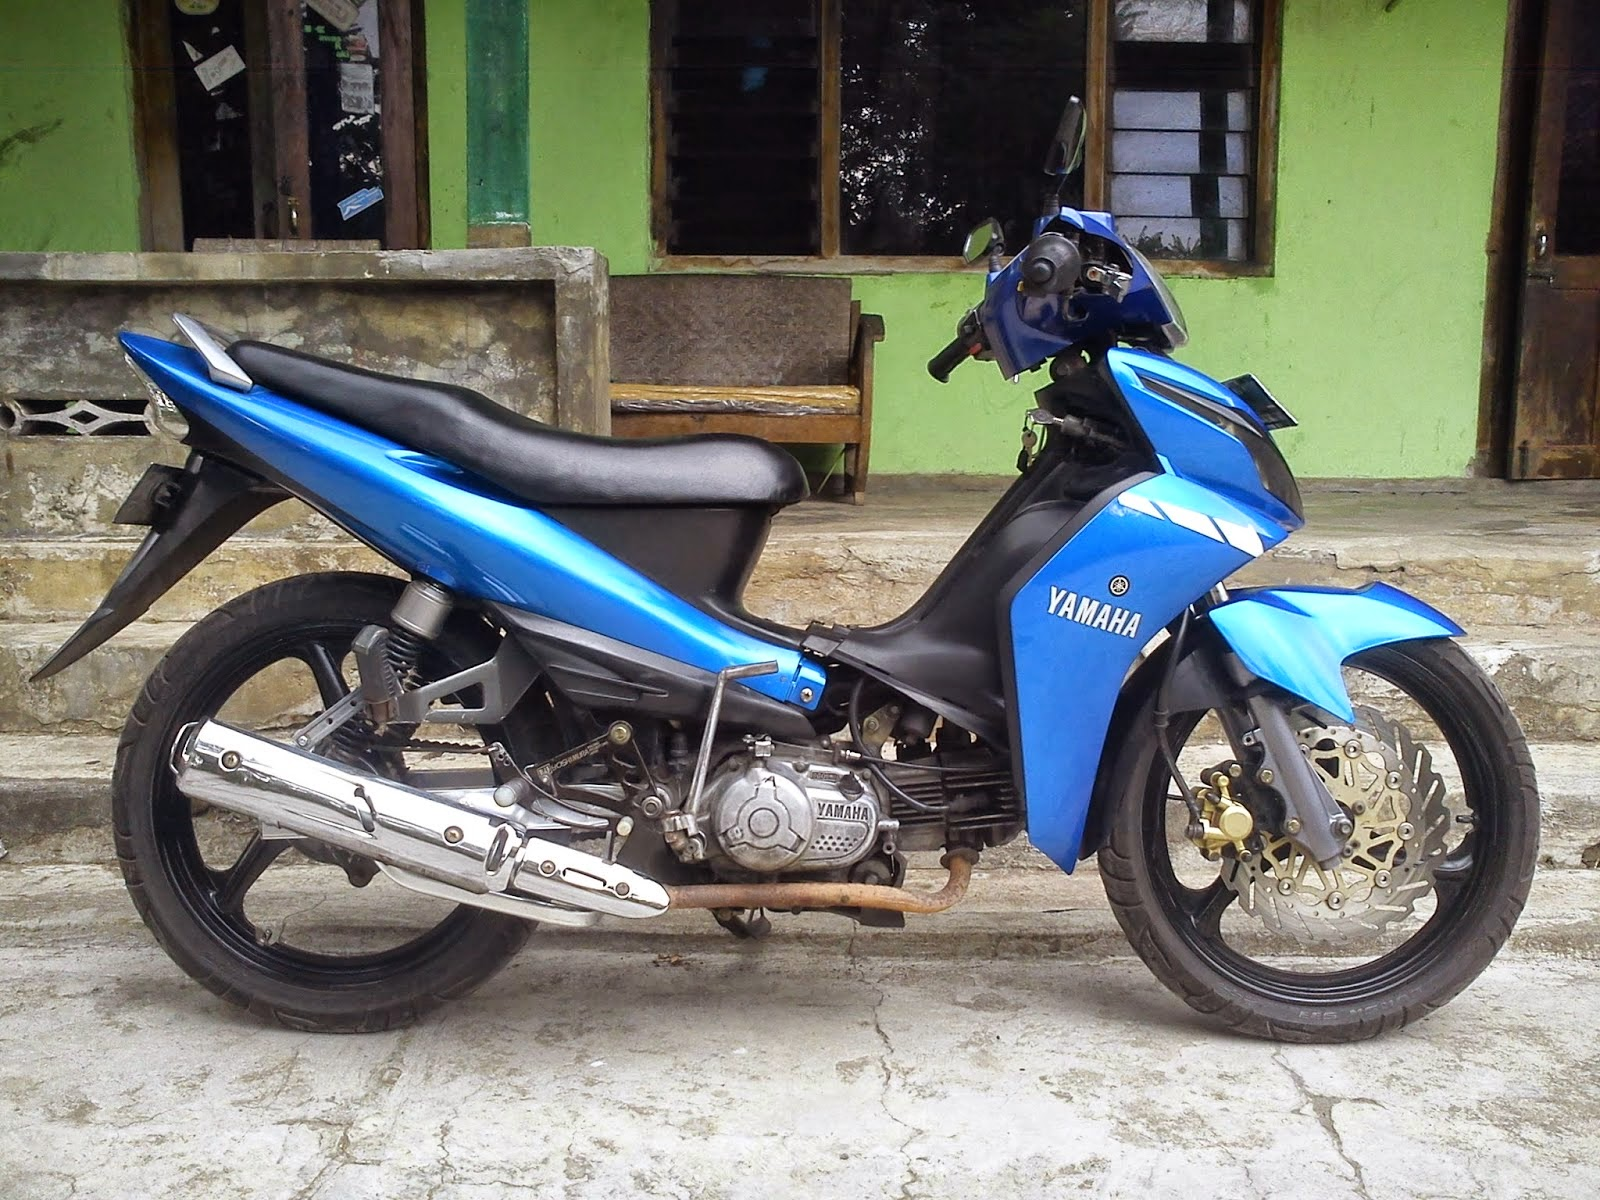 Modif Yamaha F1zr Racing